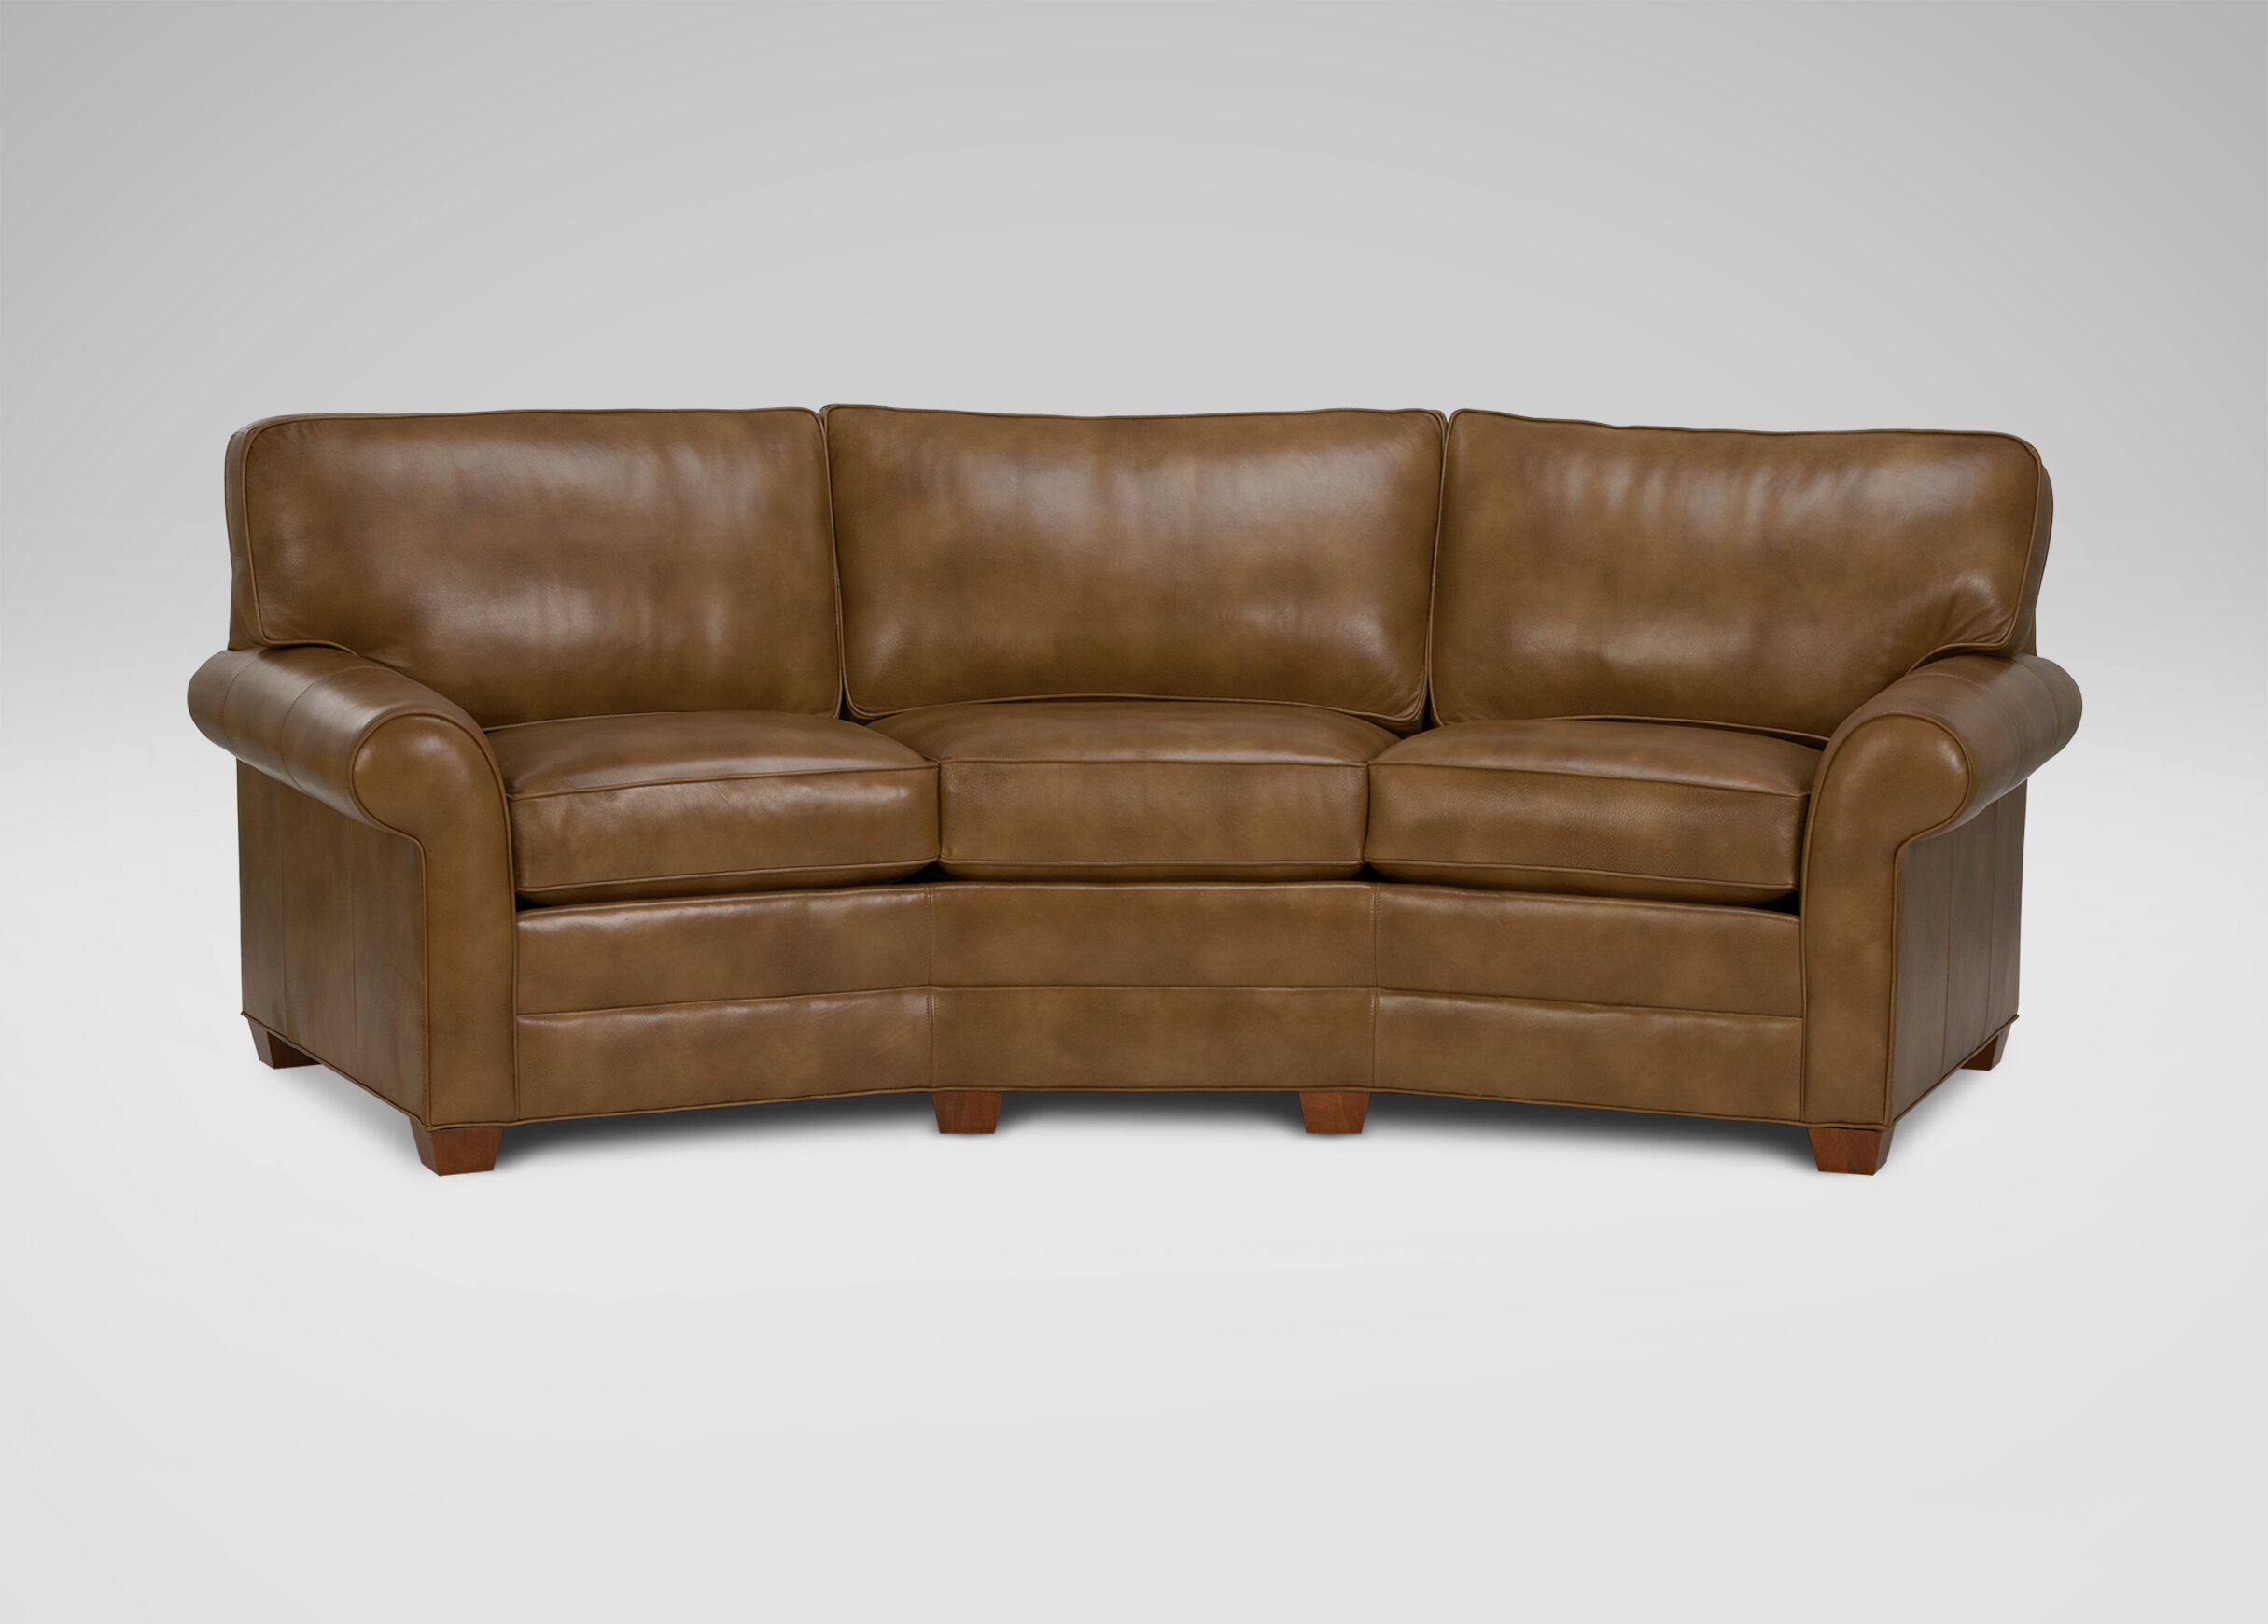 Ethan Allen Leather Couch | Ethan Allen Prices | Quality of Ethan Allen Furniture